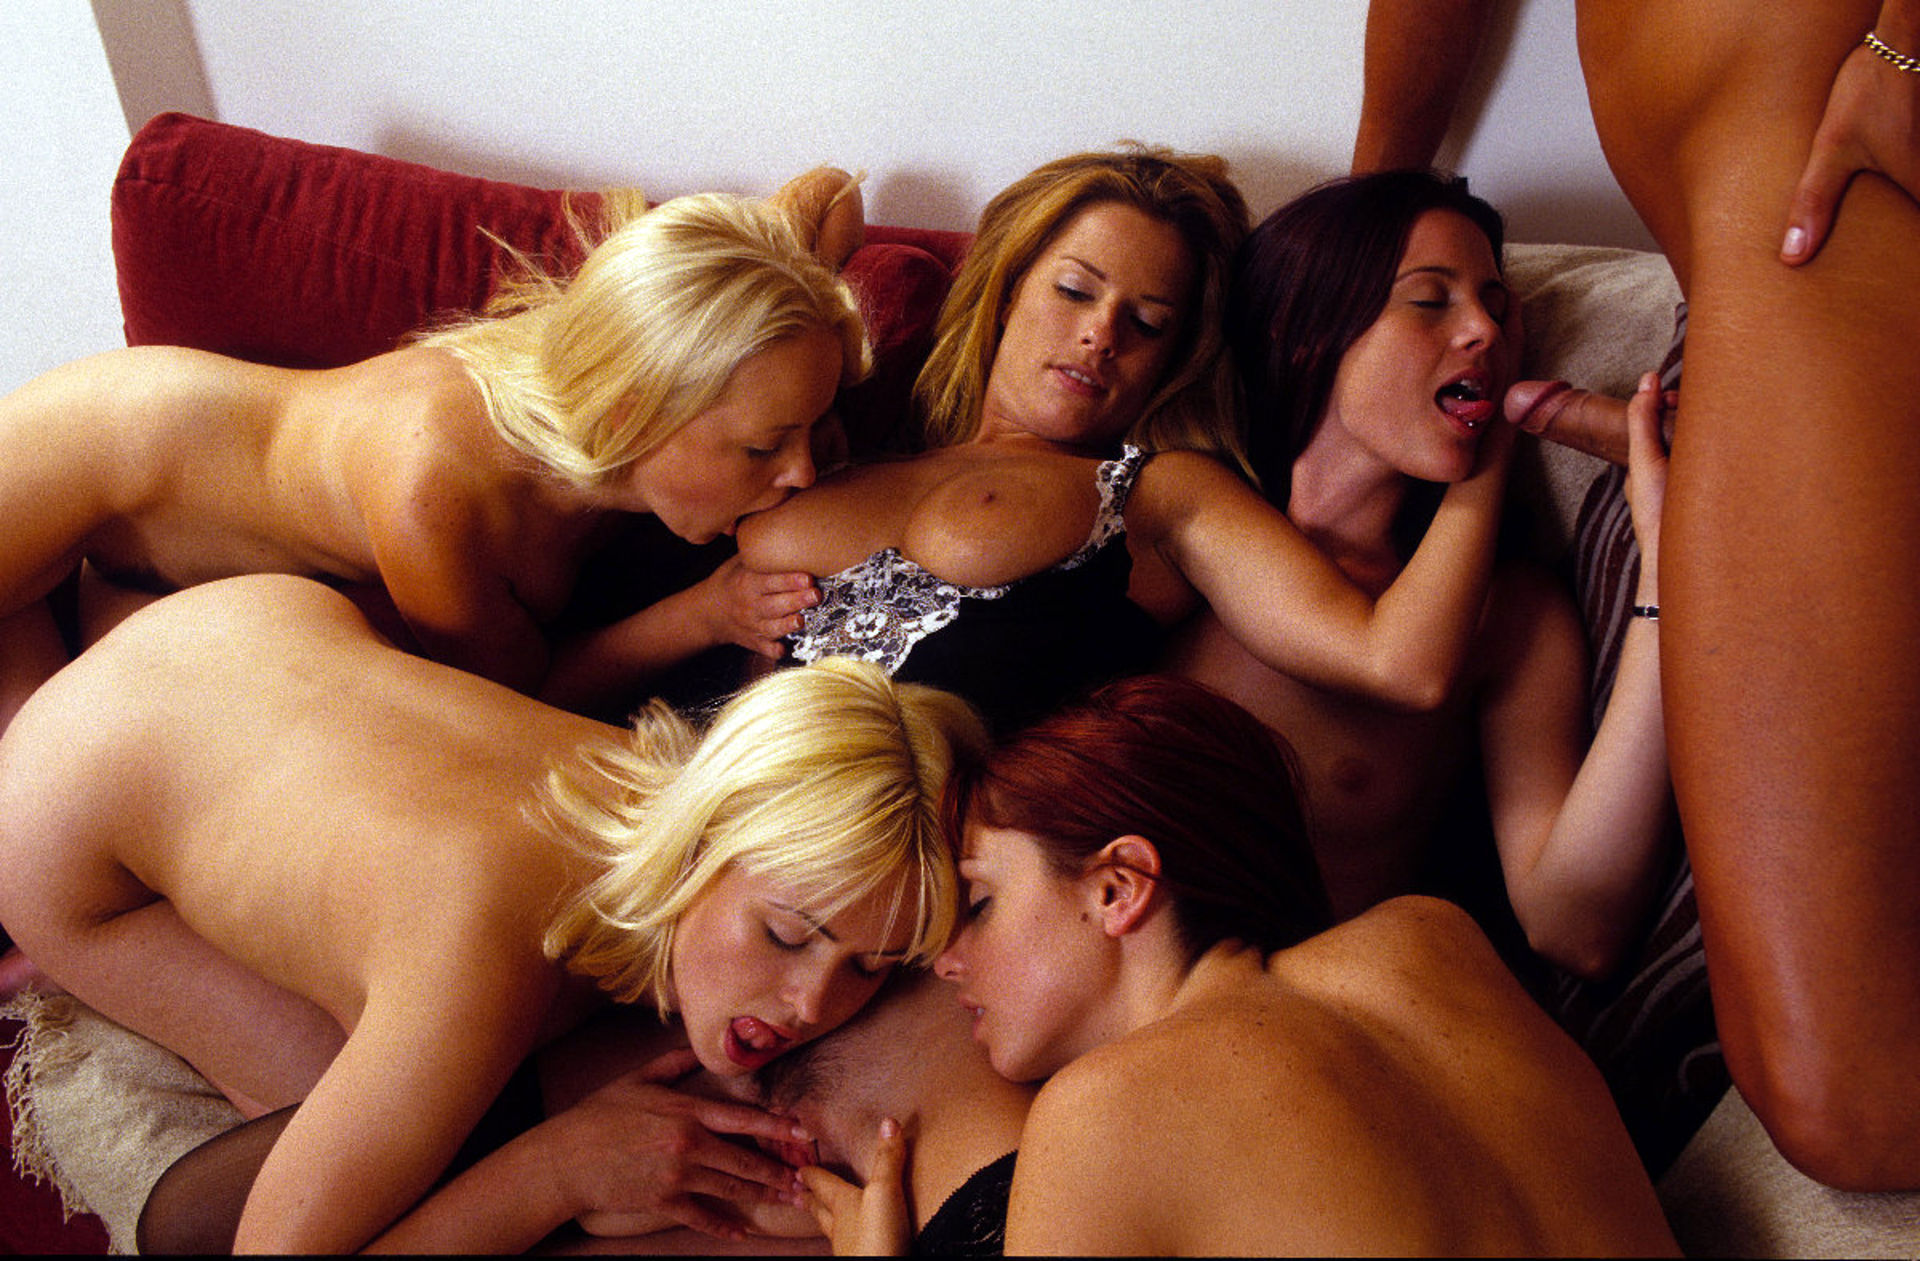 One lucky guy has an orgy with chick with dicks